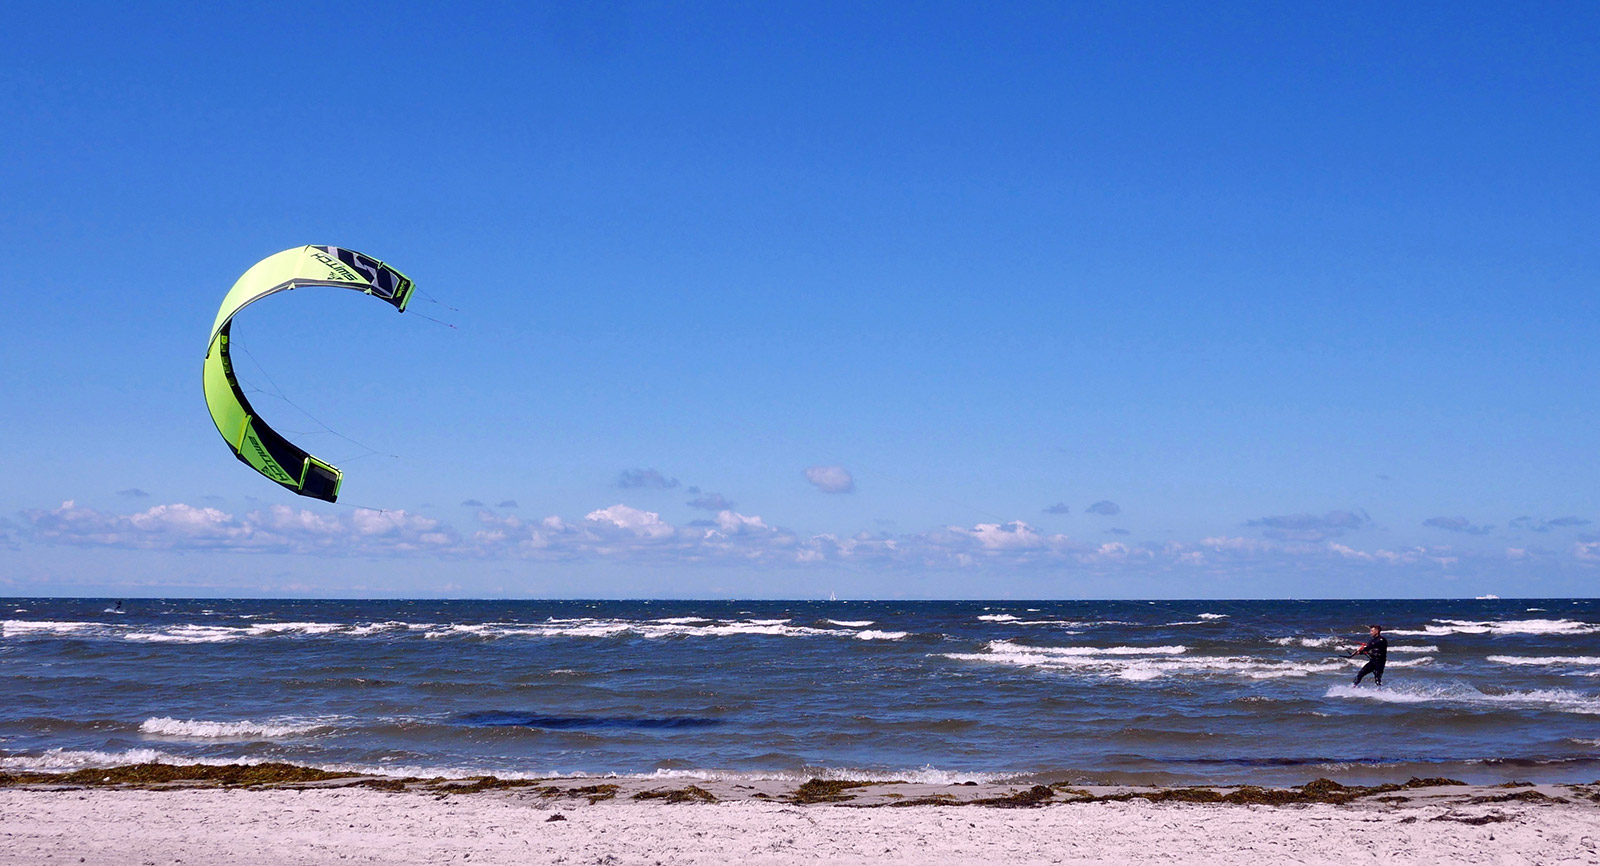 Martin Sandstrom kiting in Skanor, Sweden